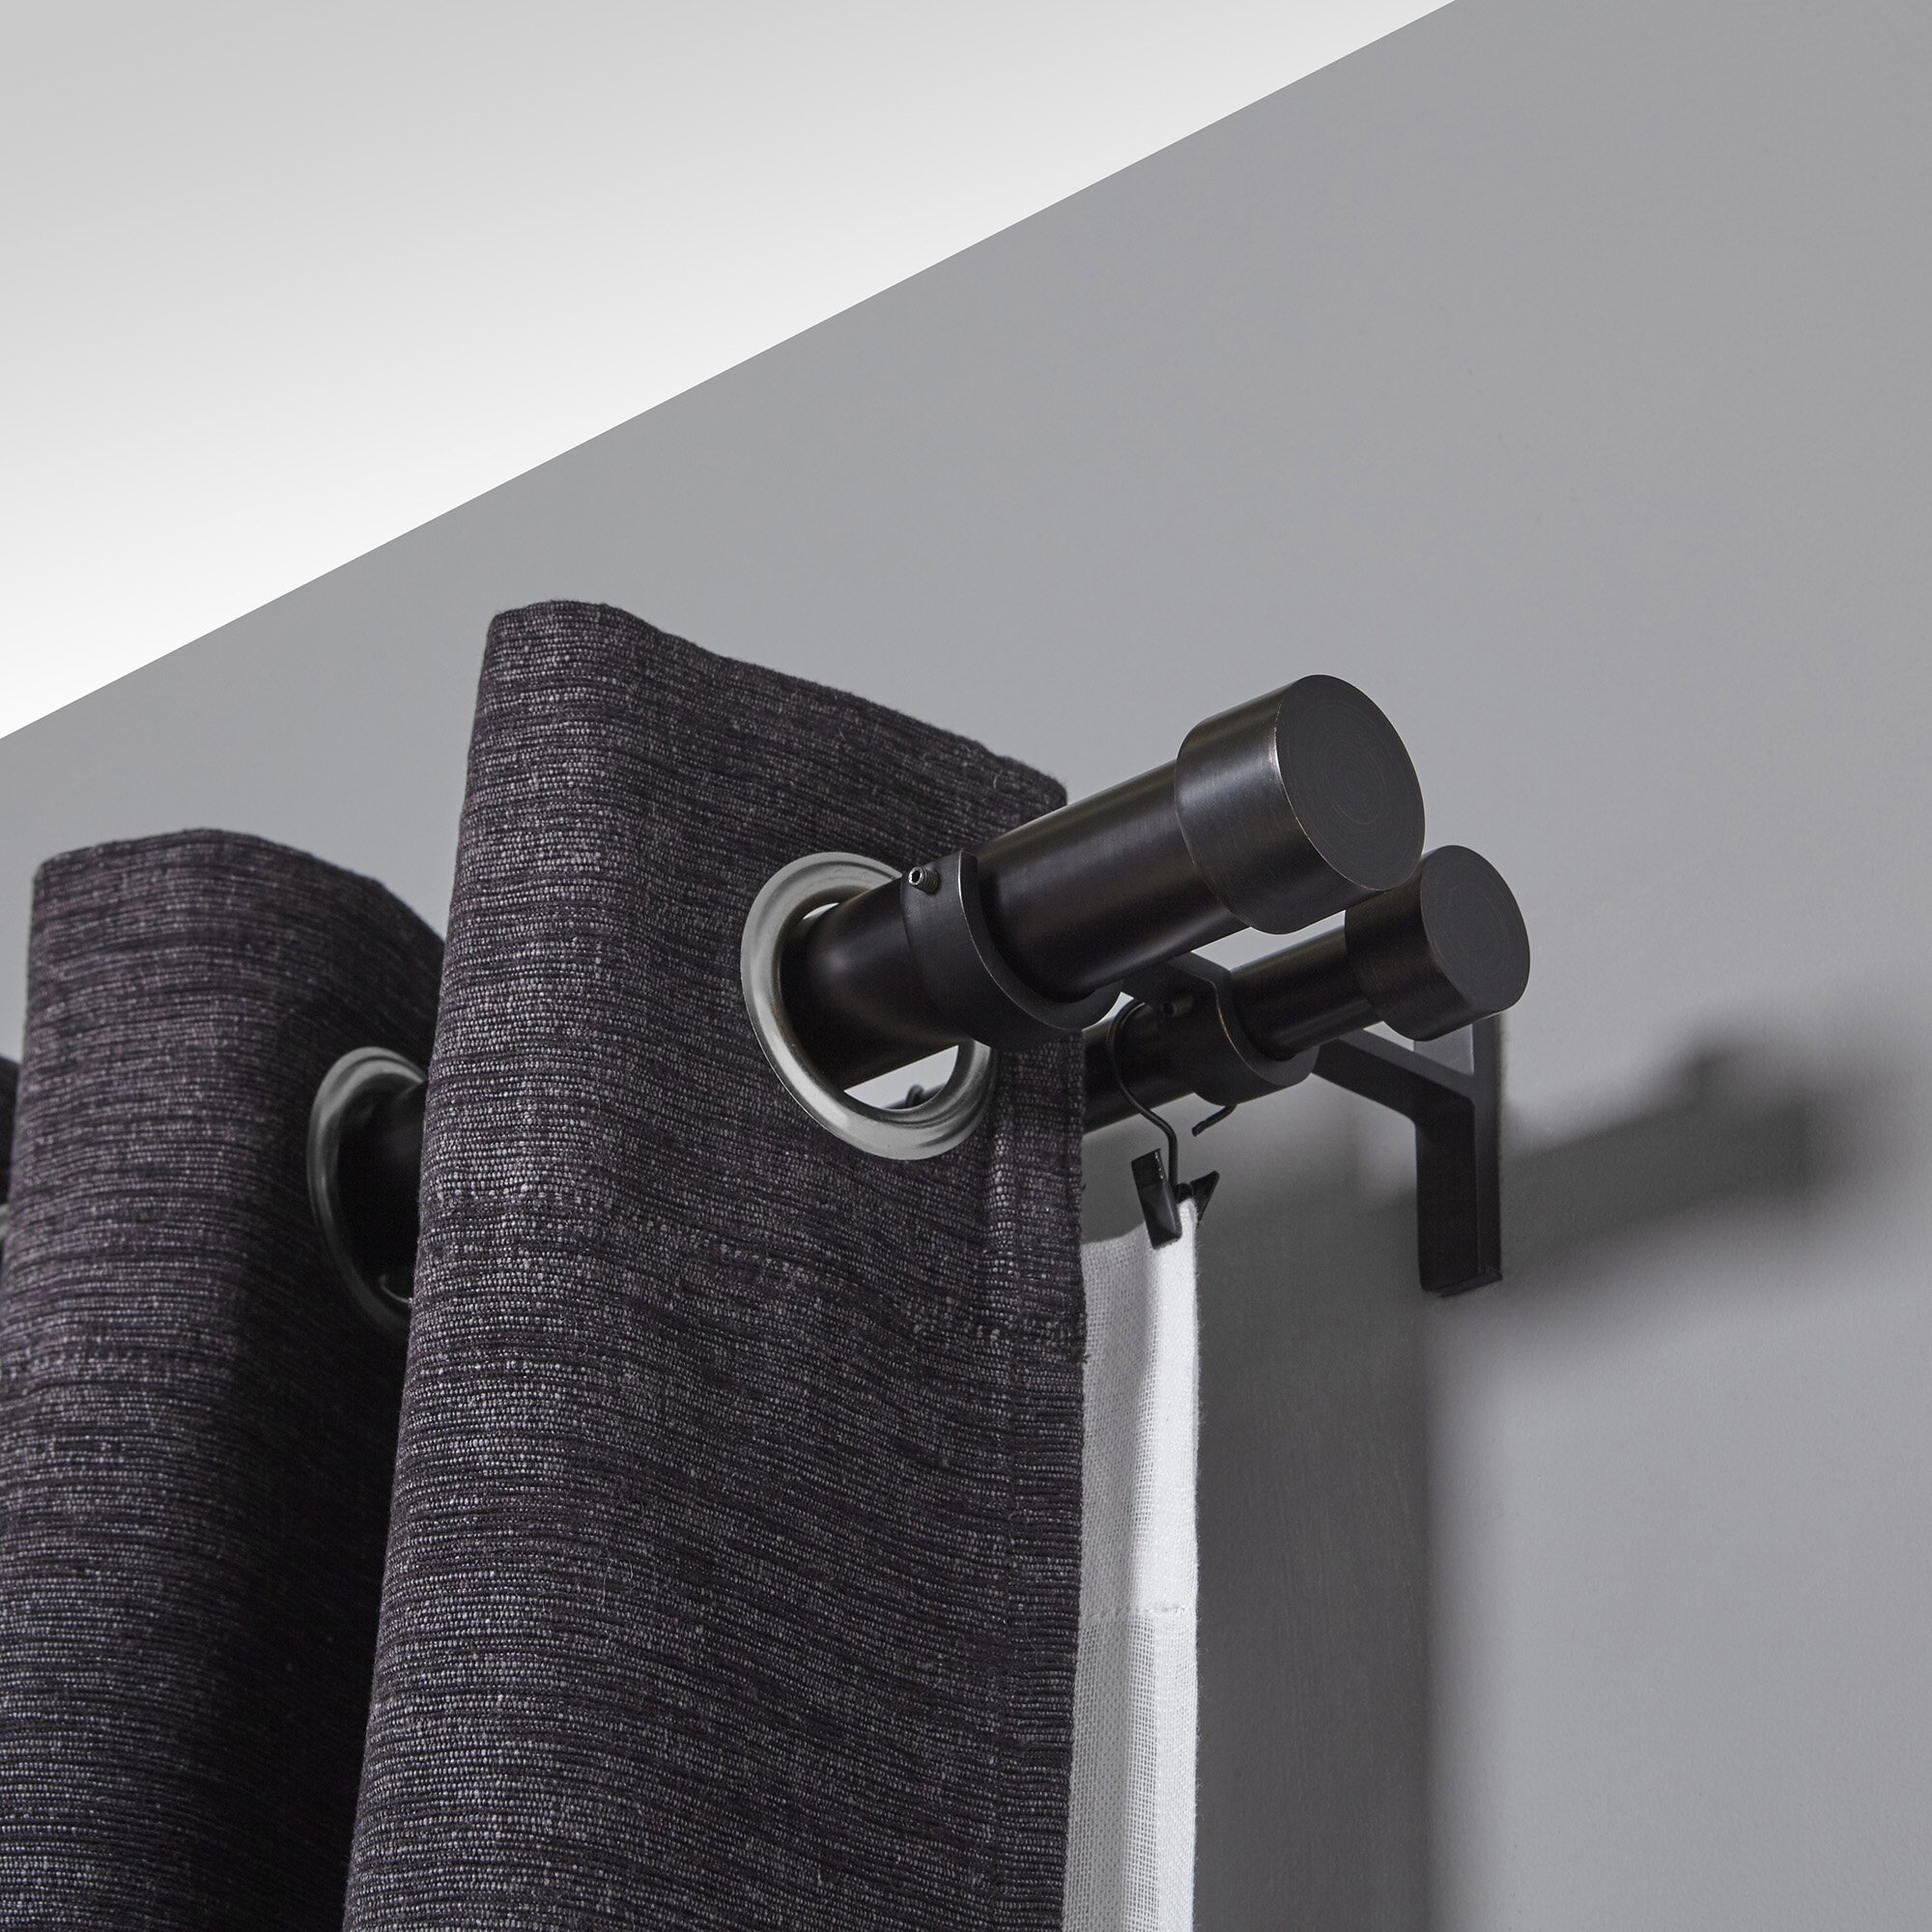 Umbra Cappa Double Curtain Rod Amp Reviews Wayfair